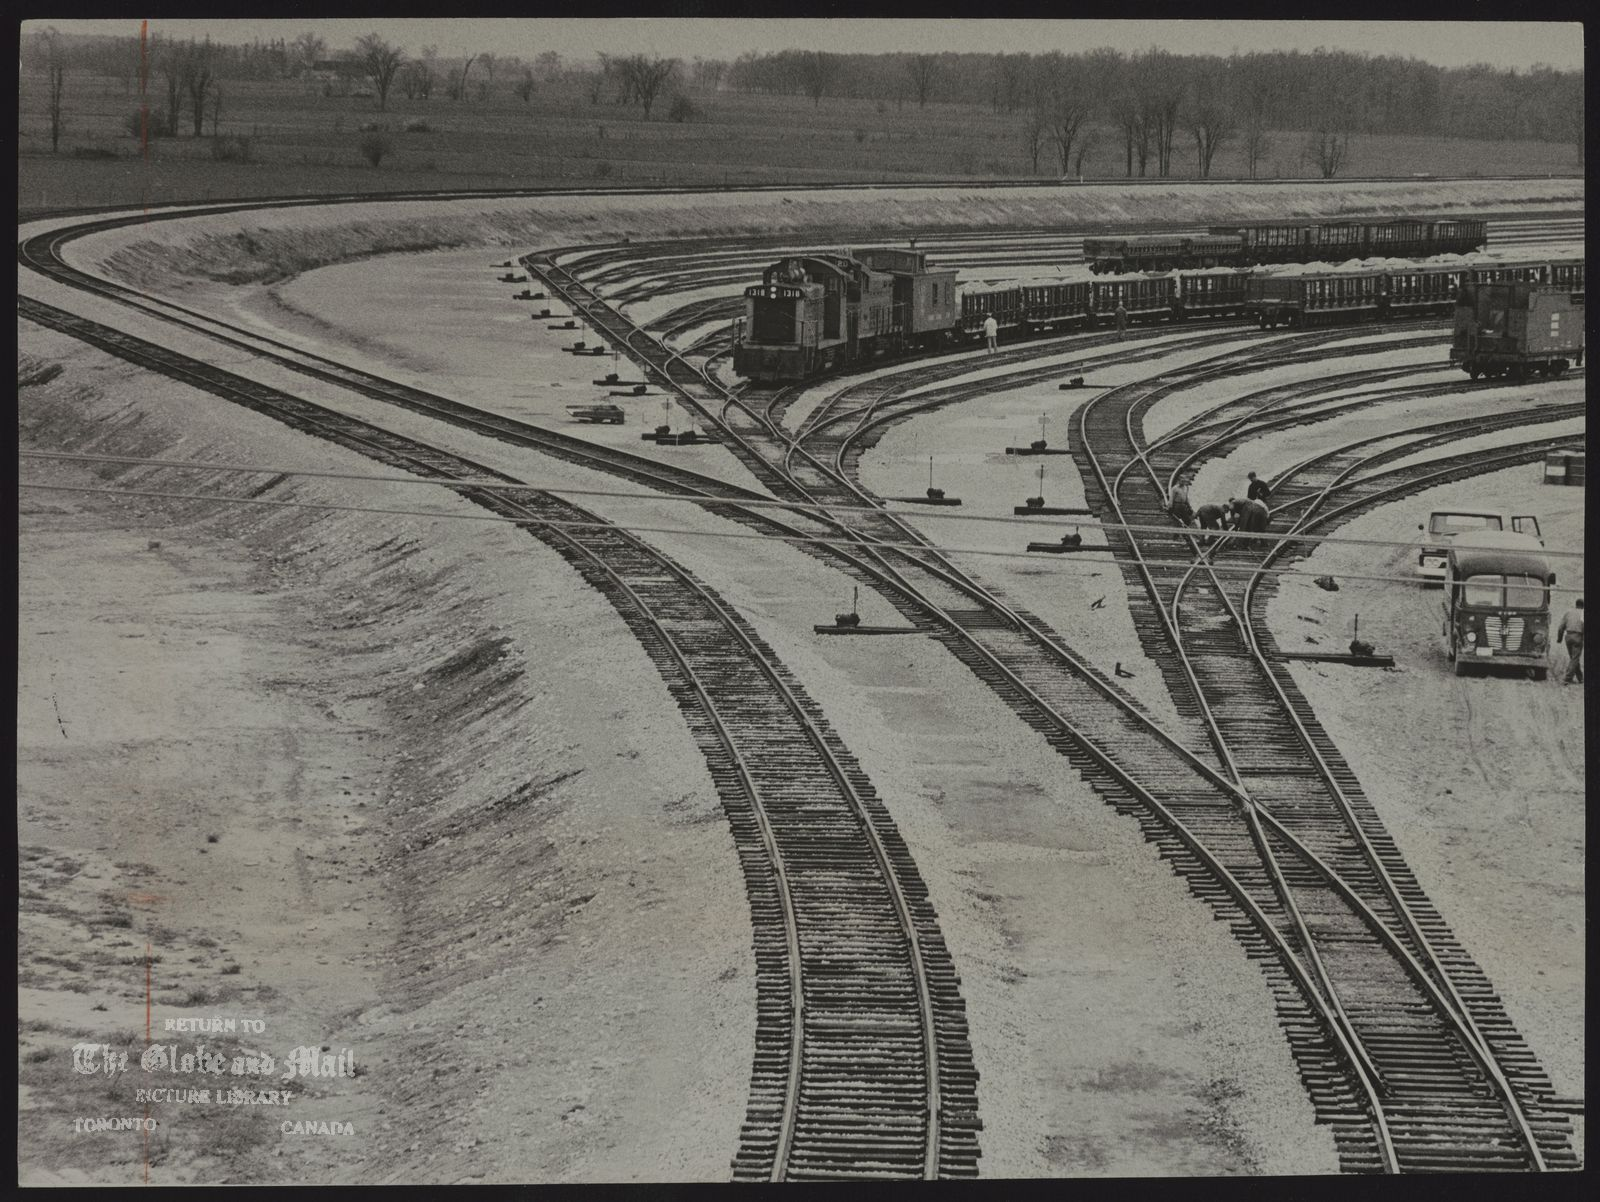 C.N.R. Miscellaneous AUTOMATED FREIGHT CLASSIFICATION YARD More than one-third of the 156 miles of track have been laid at the Canadian National Railways yard in northwestern Toronto, The yard forms part of the CNR Taronto bypass project which is scheduled to be in operation early in 1965.